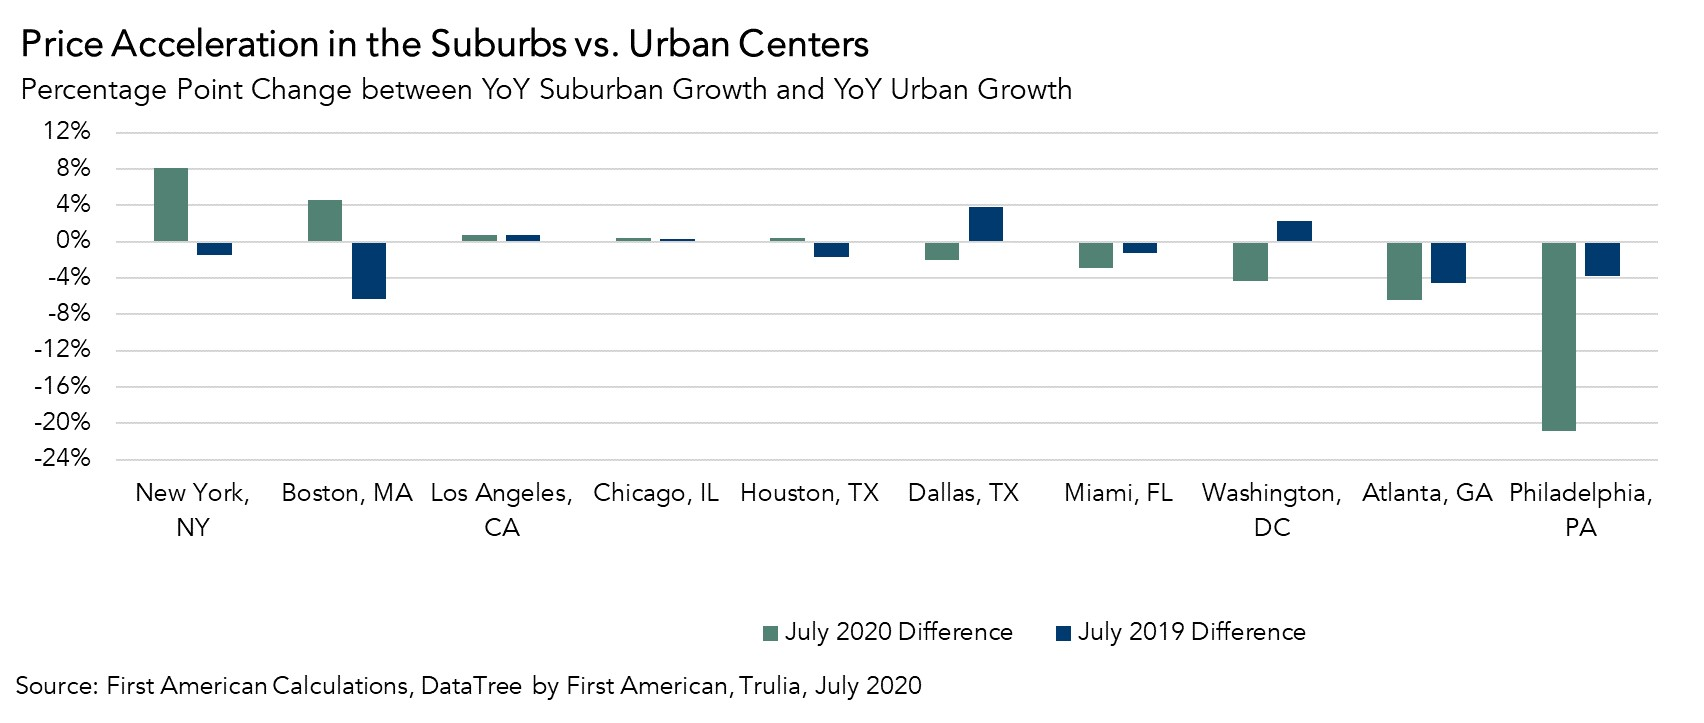 Price Acceleration in the Suburbs vs. Urban Centers Graph - July 2020